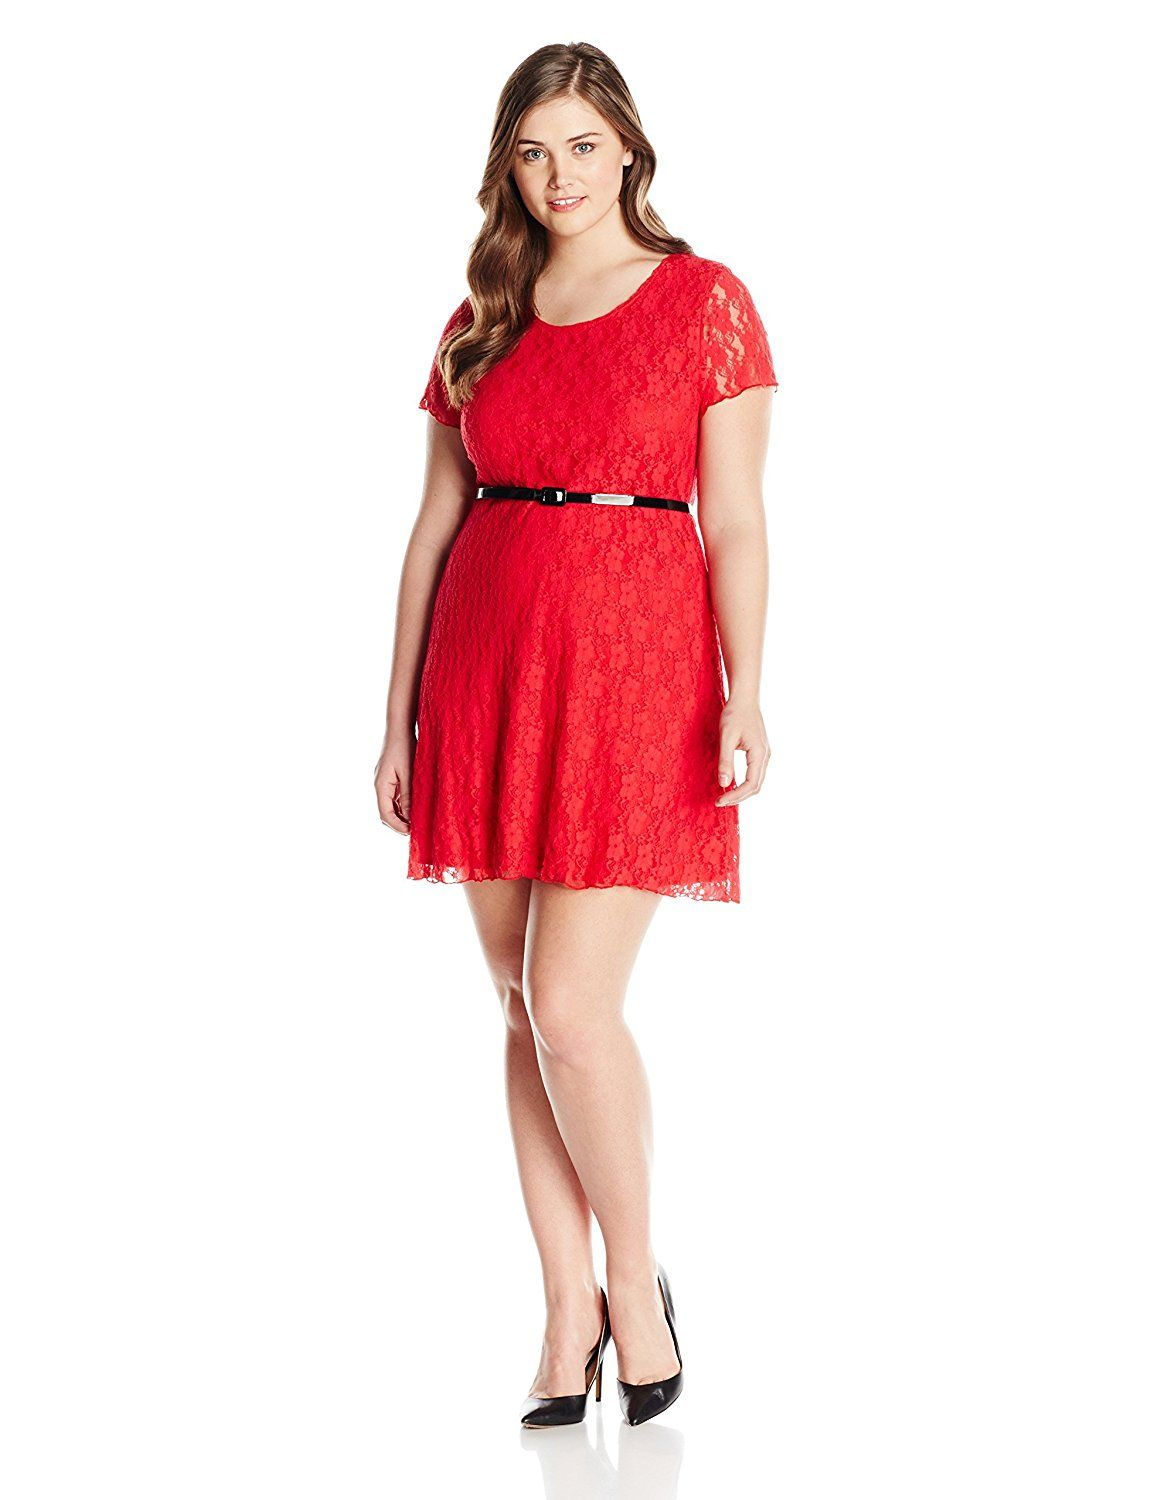 efbfda5f02 Star Vixen Women's Plus-Size Short Sleeve Lace Skater Dress with Belt **  Special product just for you. See it now! : Clothing for Plus size